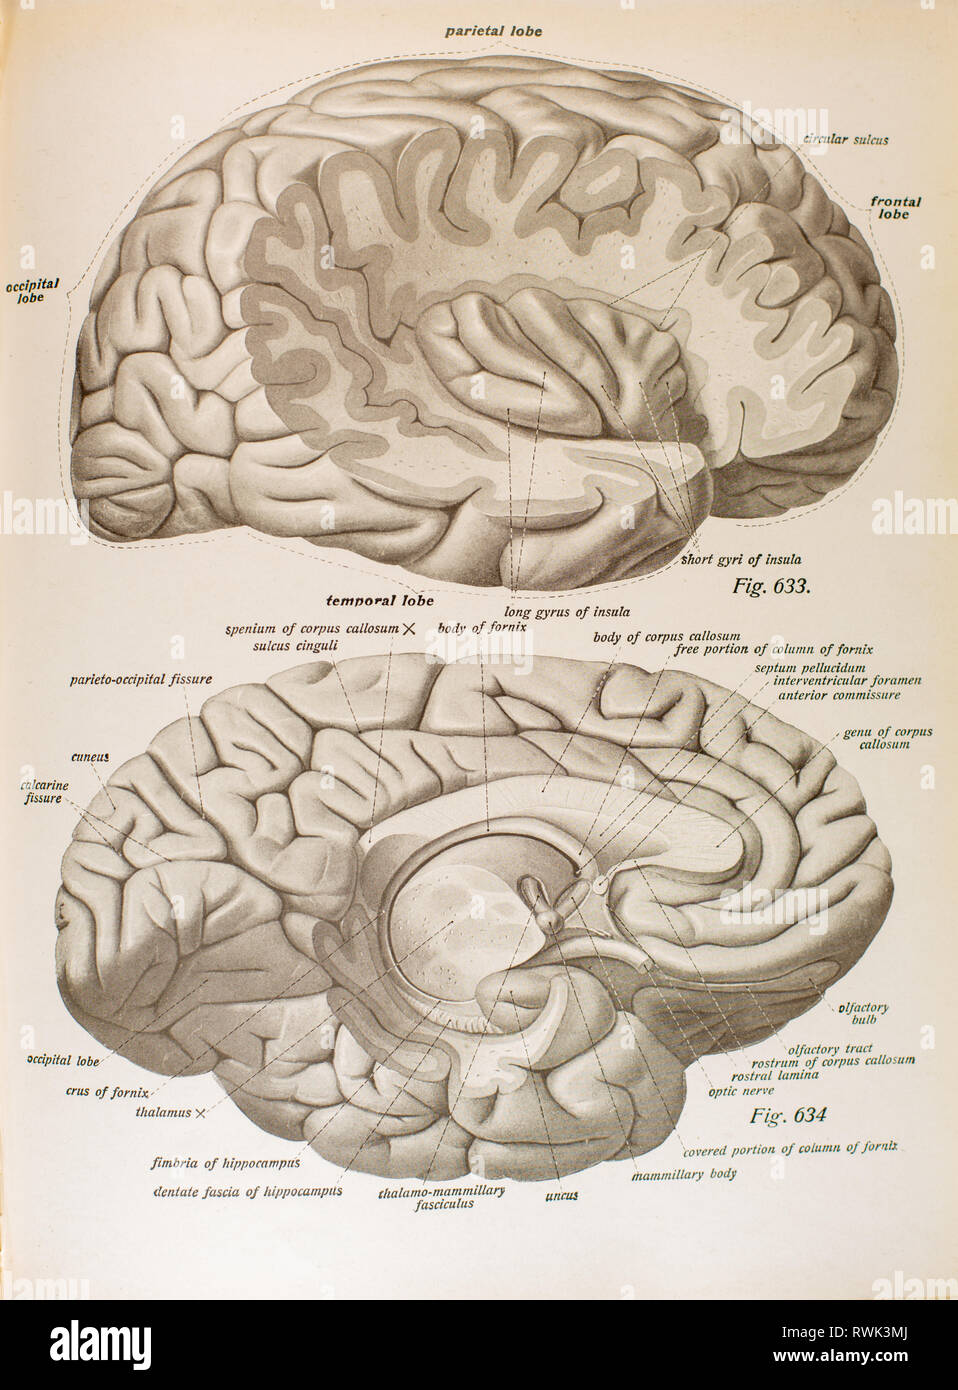 Dissection of human brain showing temporal and parietal lobes. - Stock Image